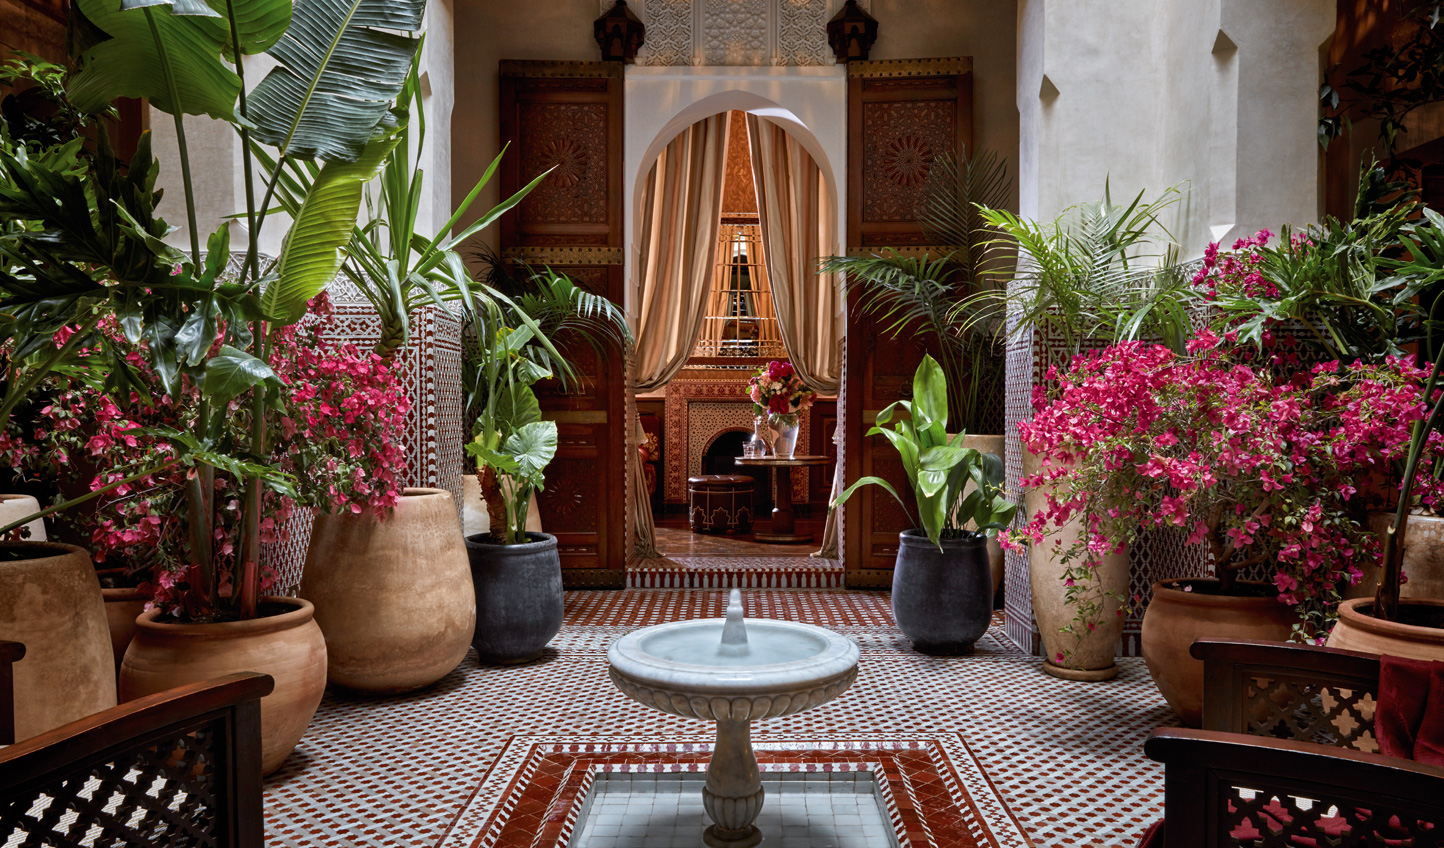 Step into your private Riad